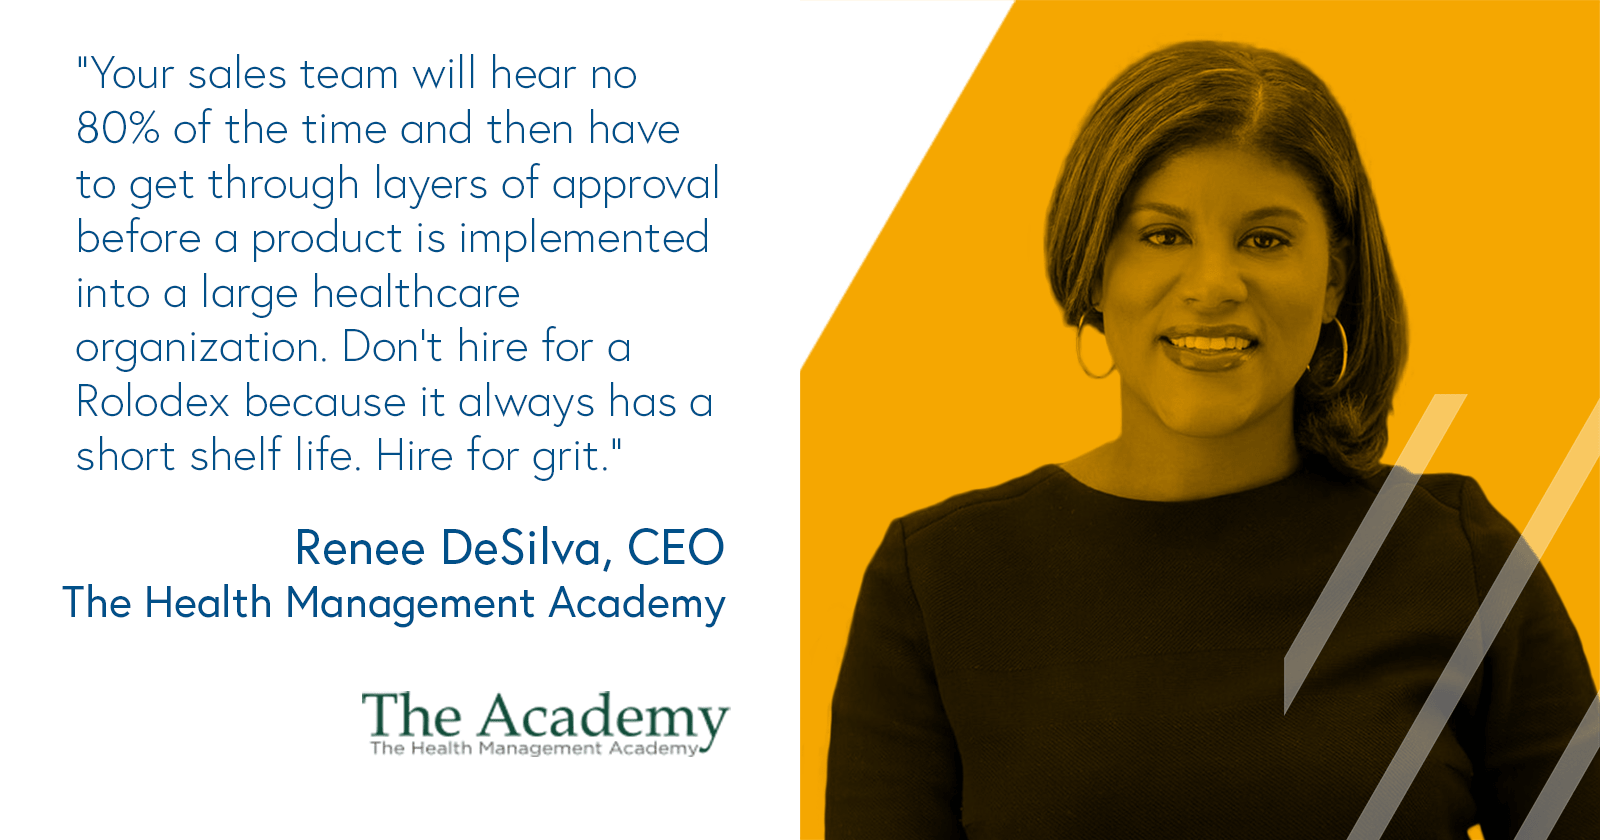 Renee DeSilva, CEO The Health Management Academy